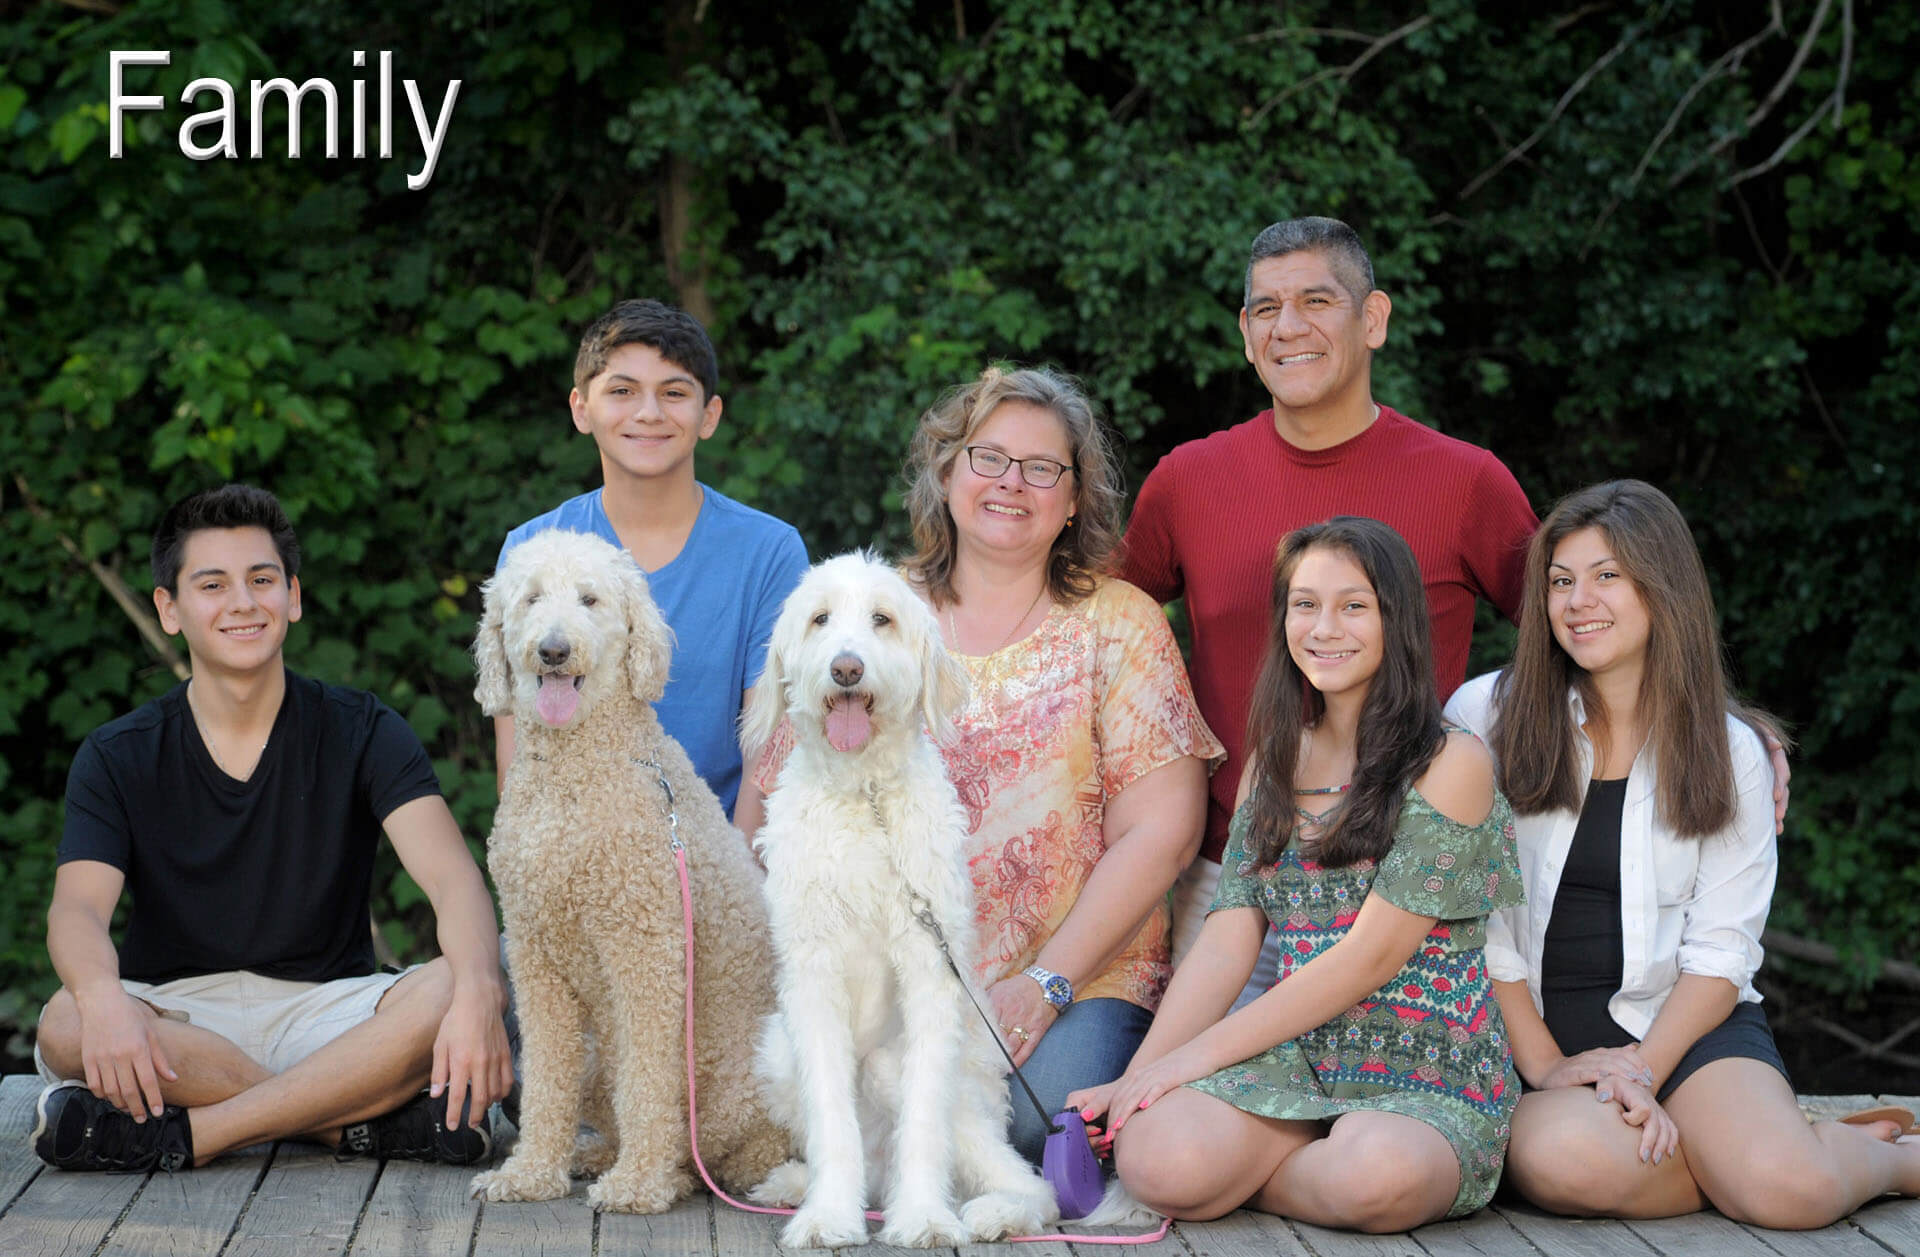 A Troy, Michigan family poses with their dogs in Auburn Hills, Michigan during their family photography session.